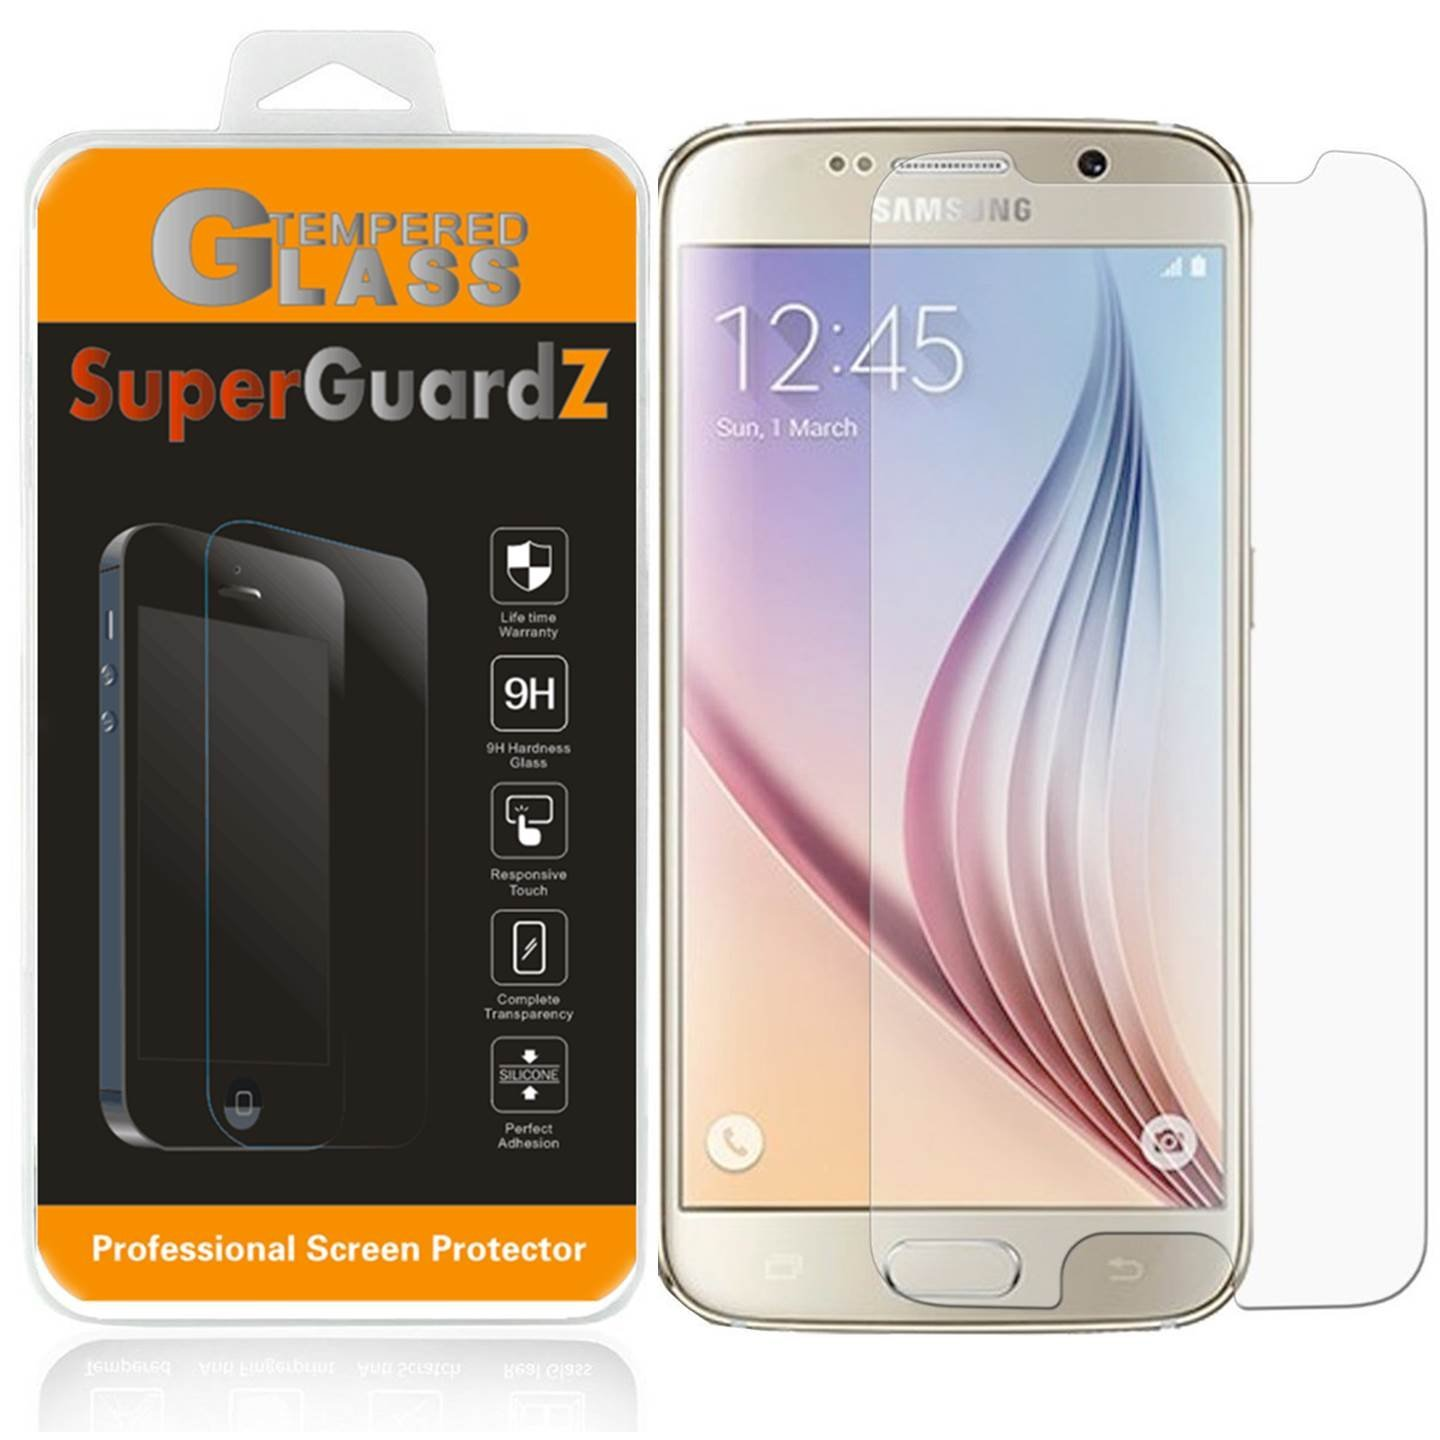 For Samsung Galaxy S6 - SuperGuardZ Tempered Glass Screen Protector, 9H, Anti-Scratch, Anti-Bubble, Anti-Fingerprint